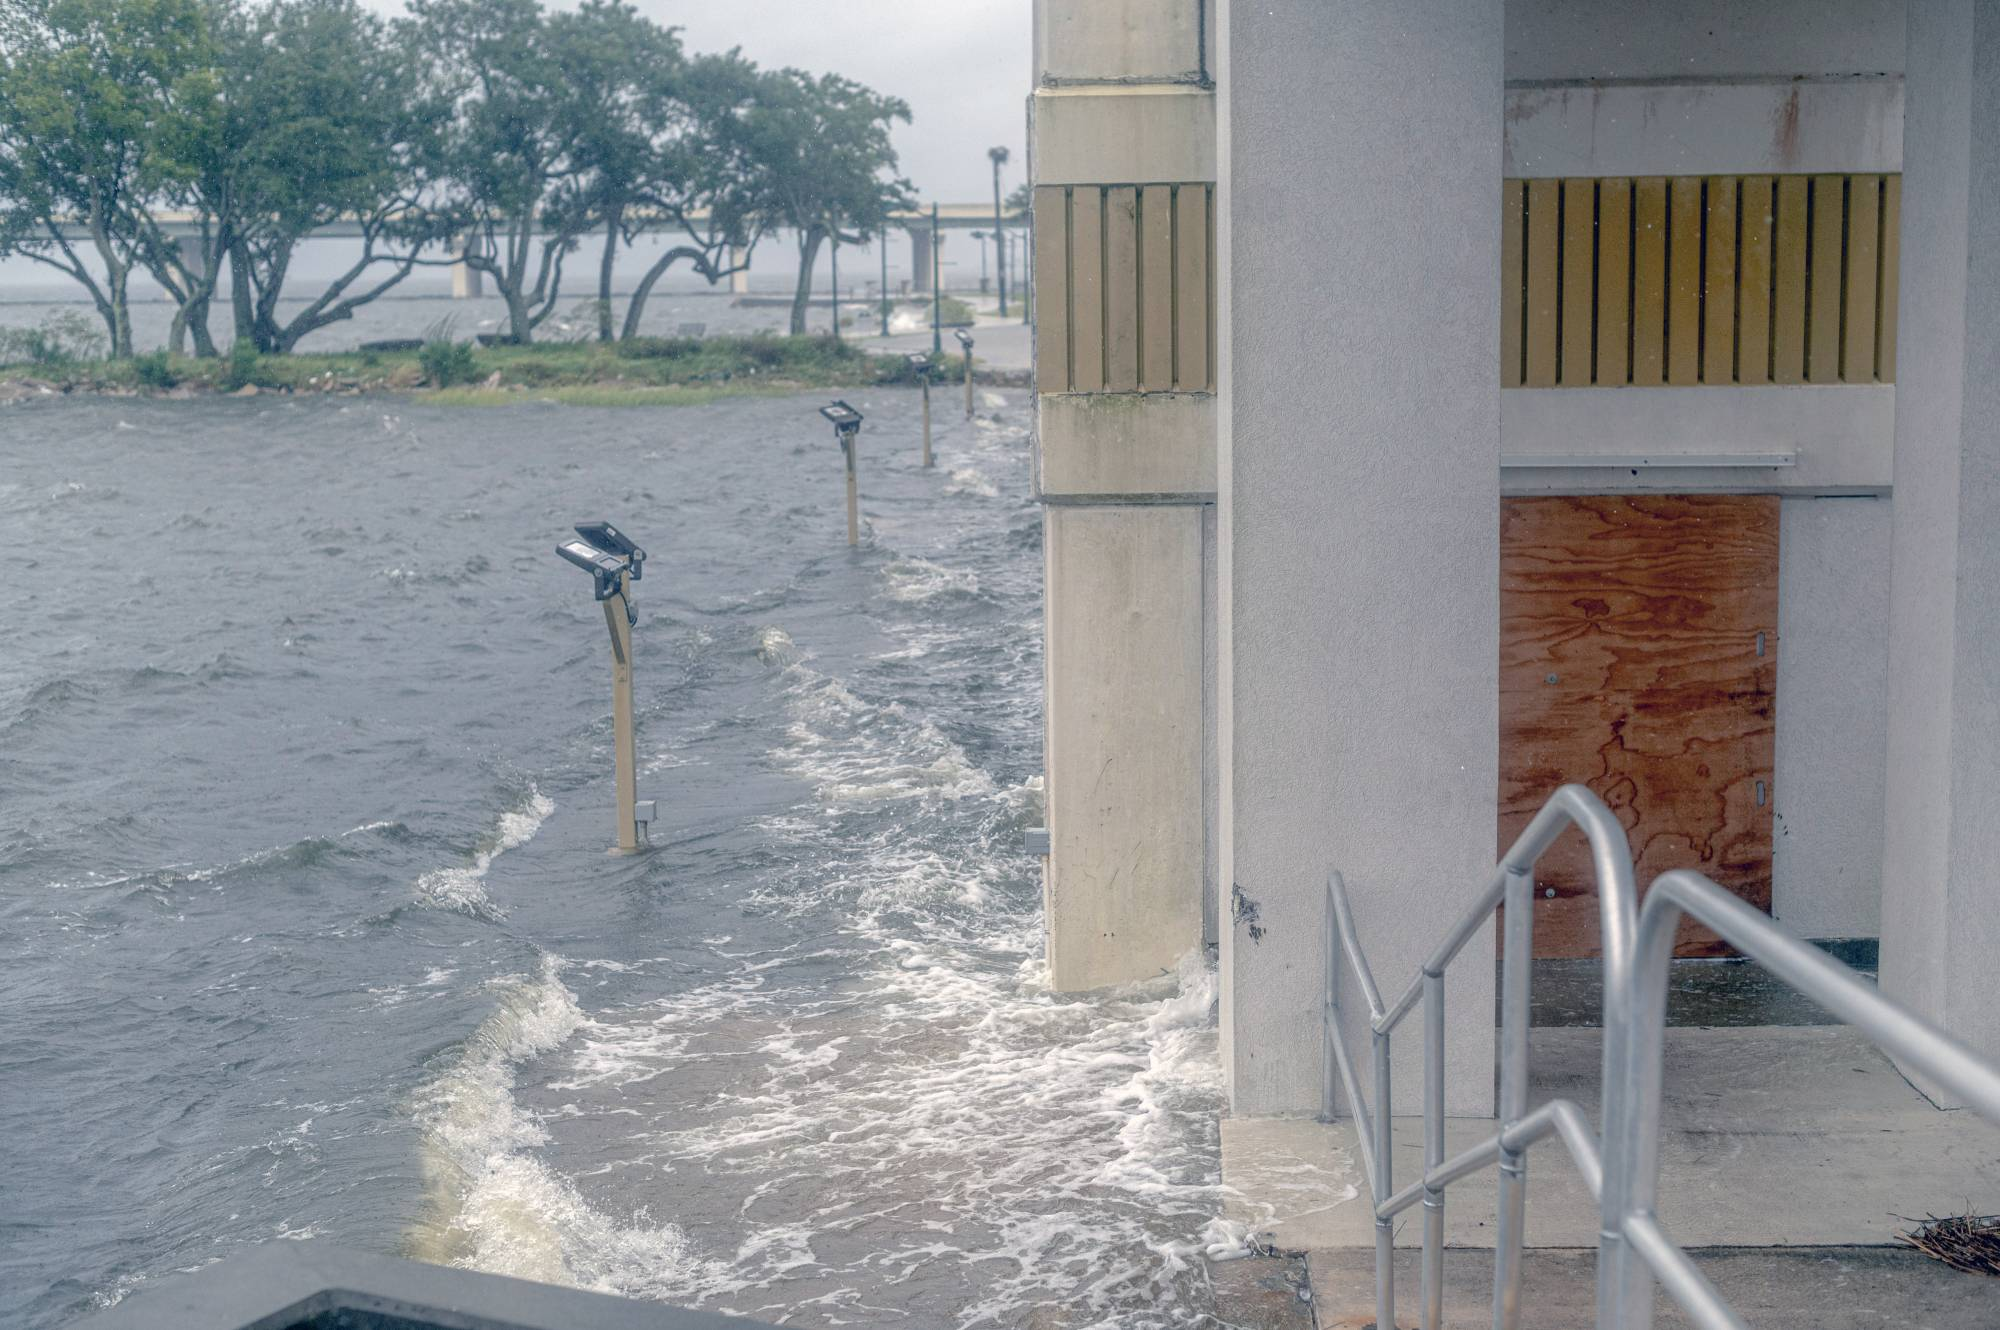 Storm surge in advance of Hurricane Sally is pushed against the Palace Casino in Biloxi, Mississippi, on Tuesday. | EMILY KASK / THE NEW YORK TIMES